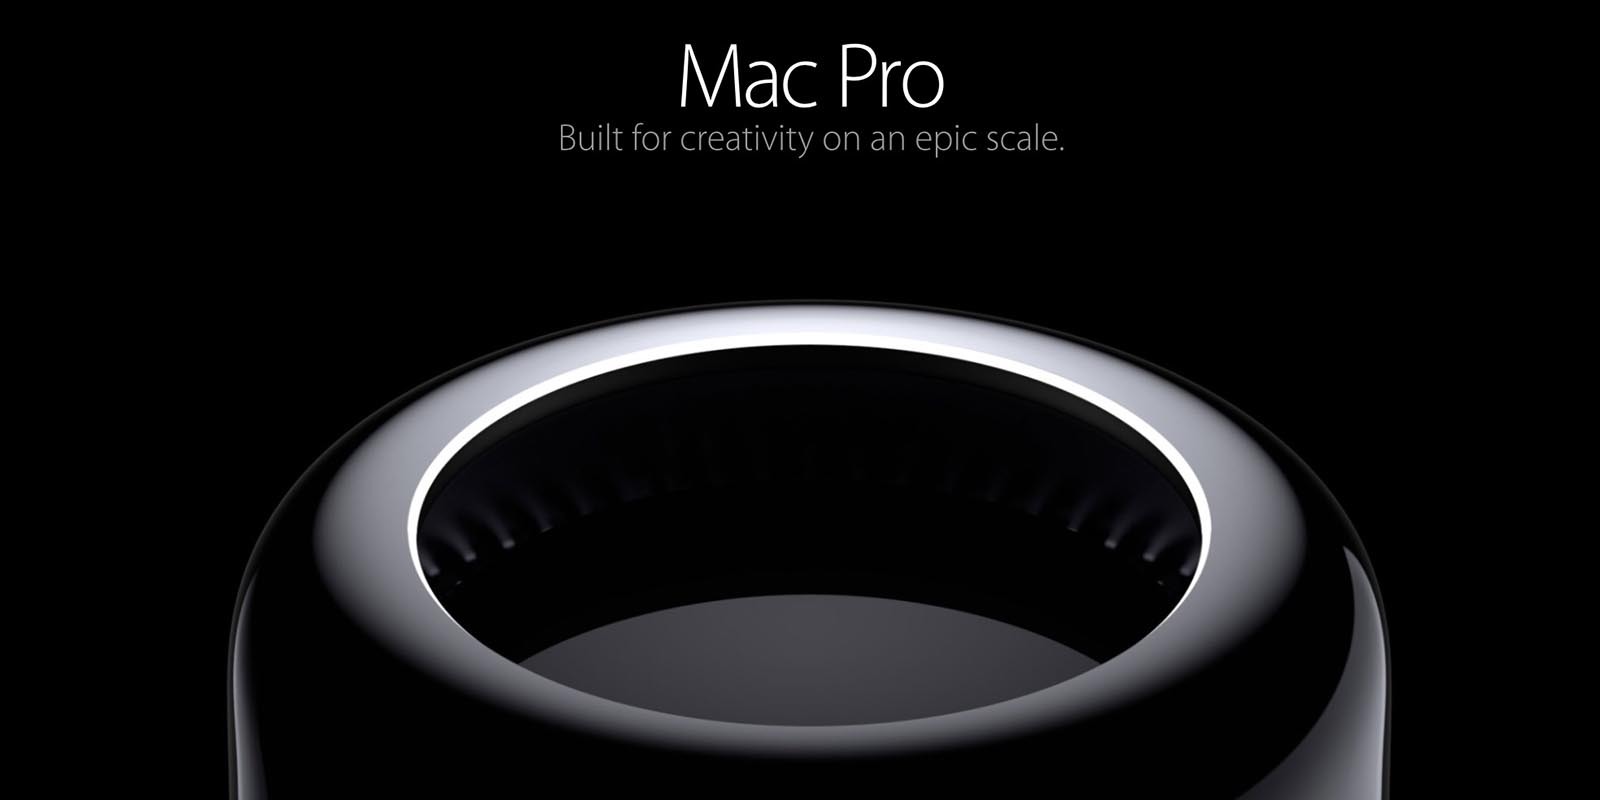 Apple iMac Pro Release Date, Price, Specs And Other Details Finally Revealed